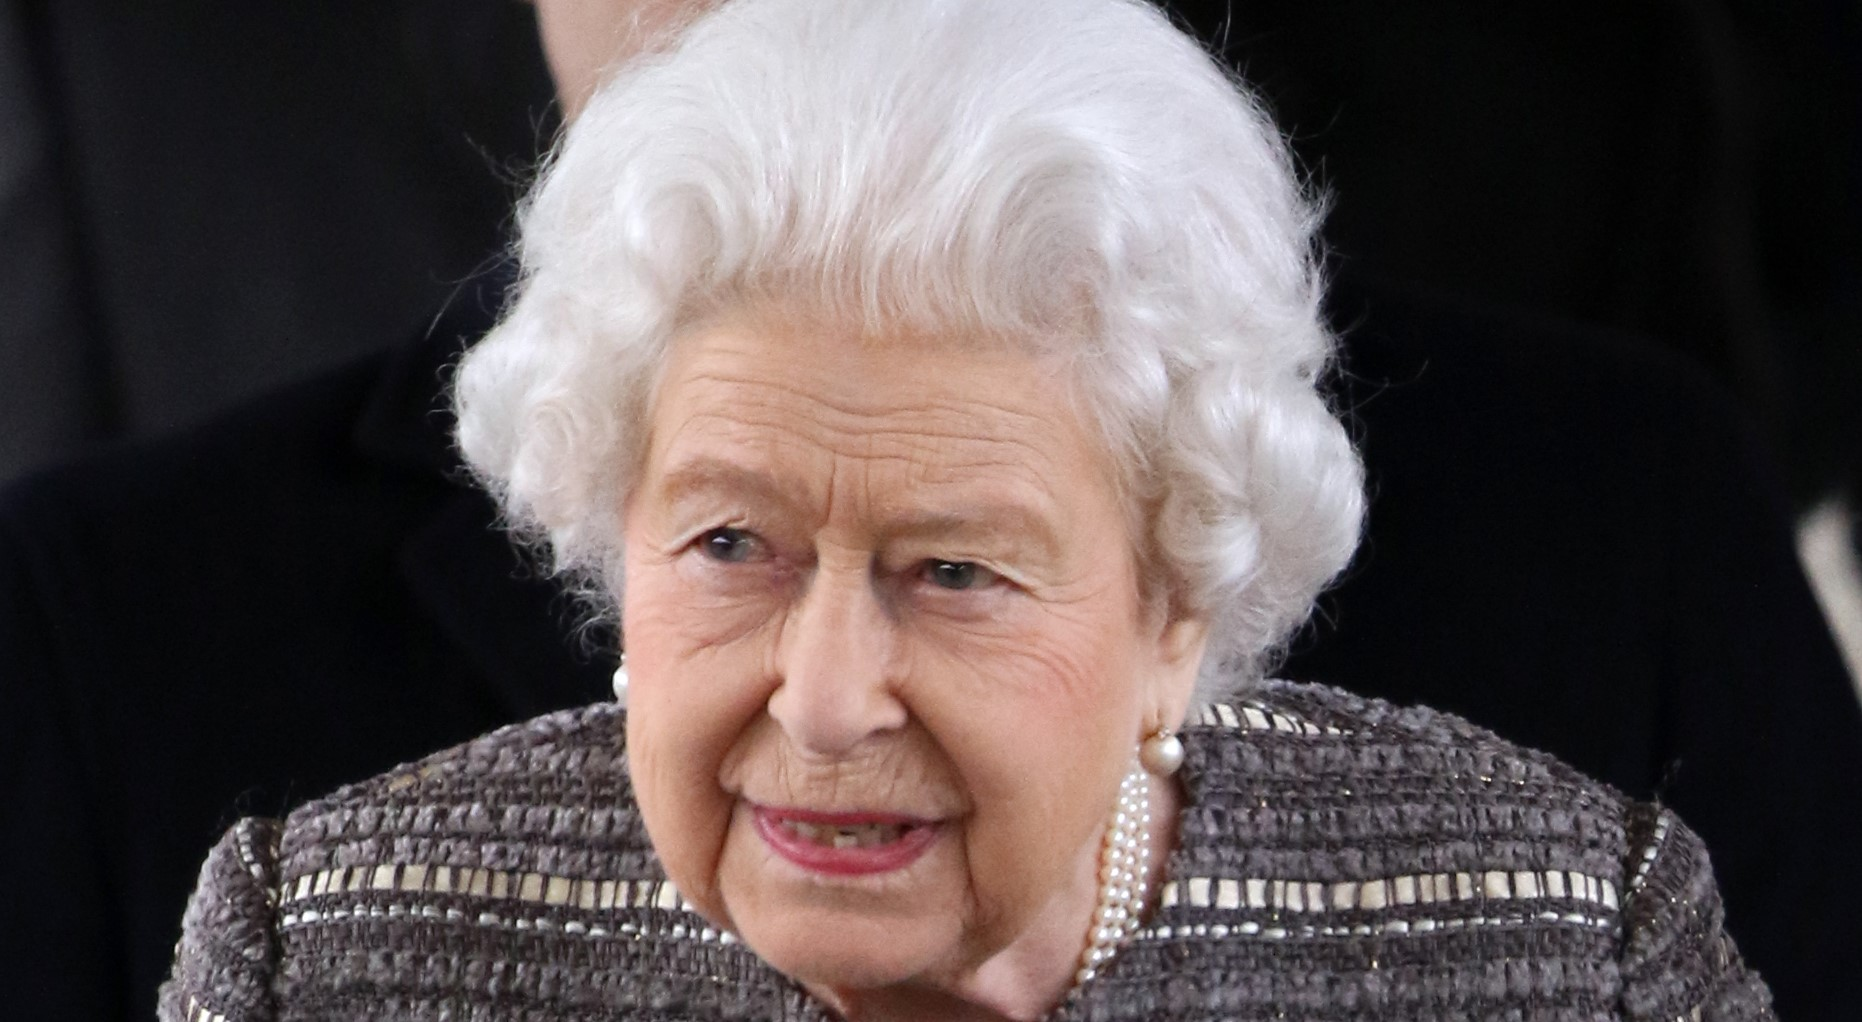 The Queen looks pretty in pink in new photo